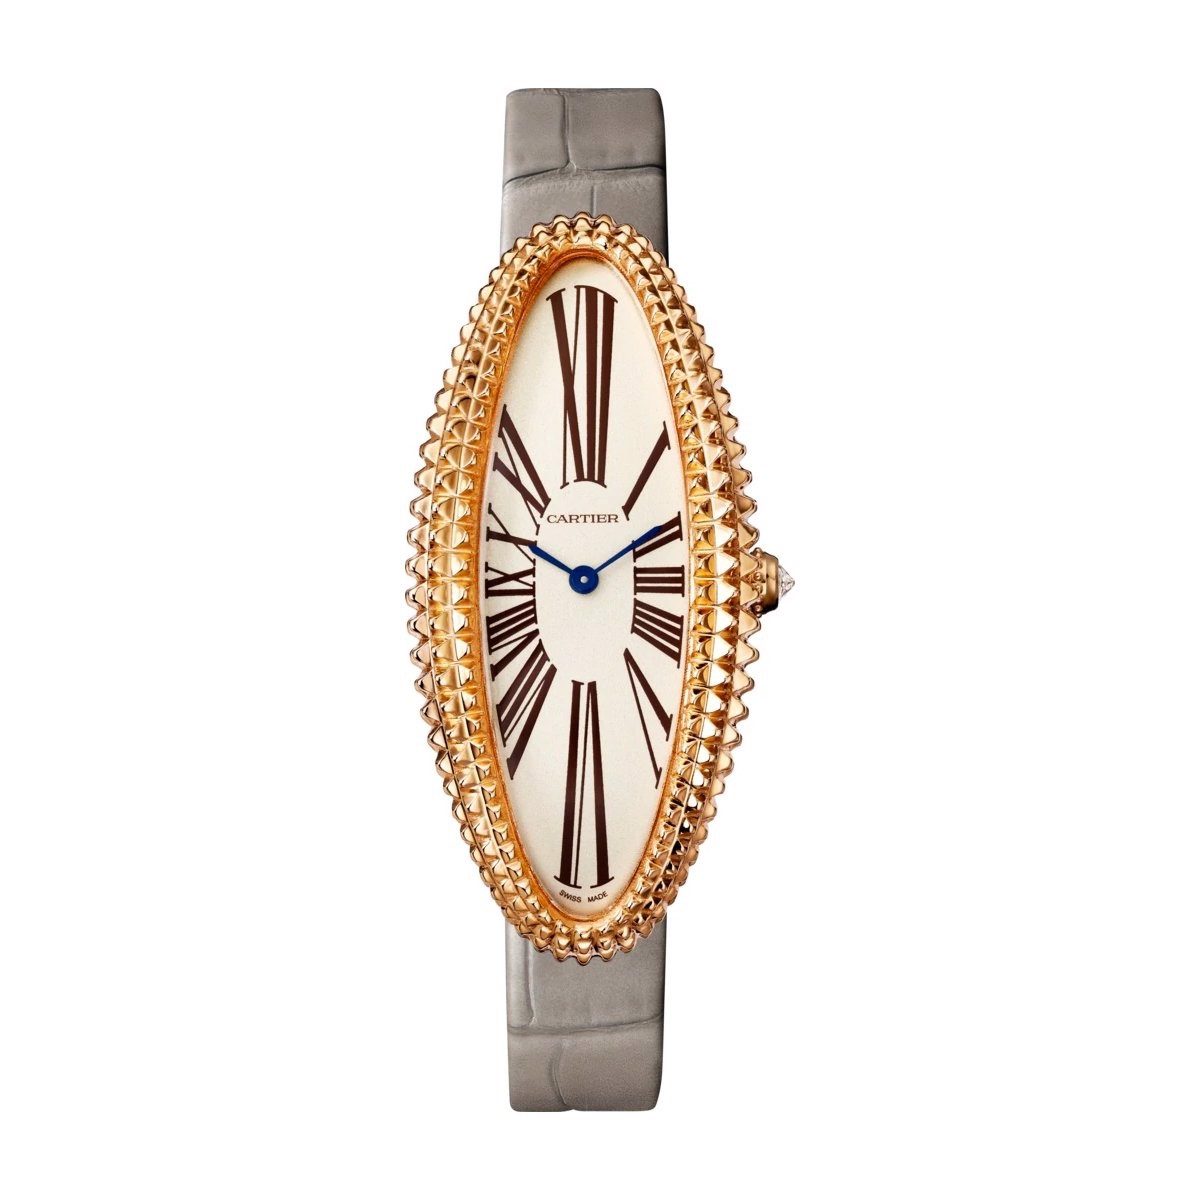 Cartier Baignoire Allongée Medium Pink Gold Leather